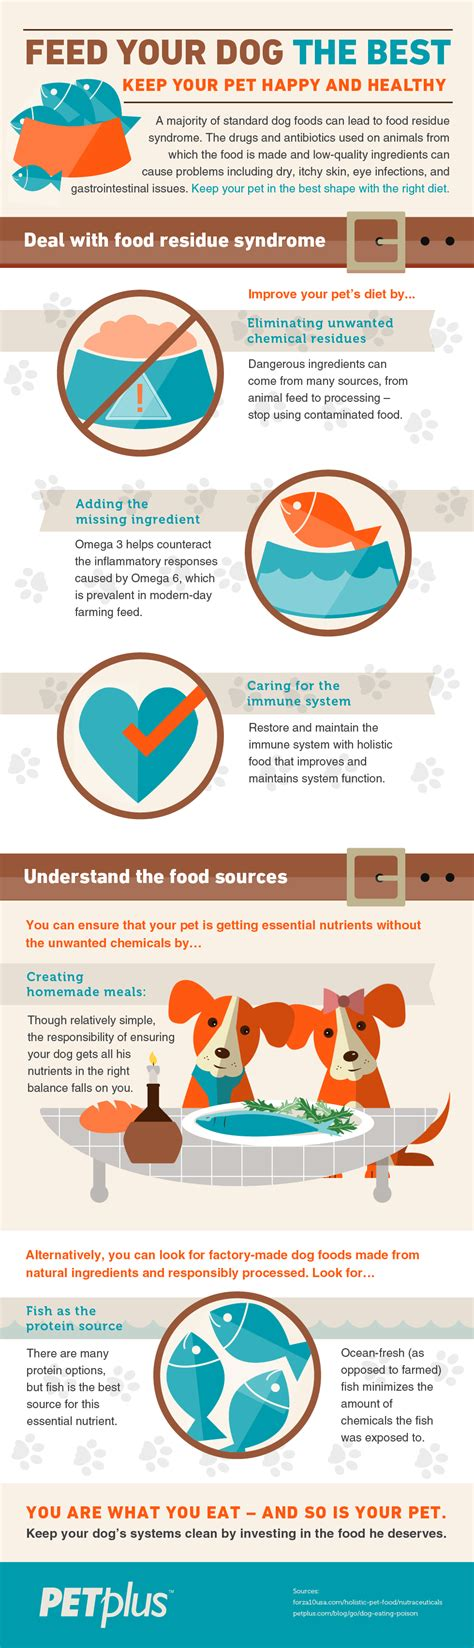 feed  dog   infographic